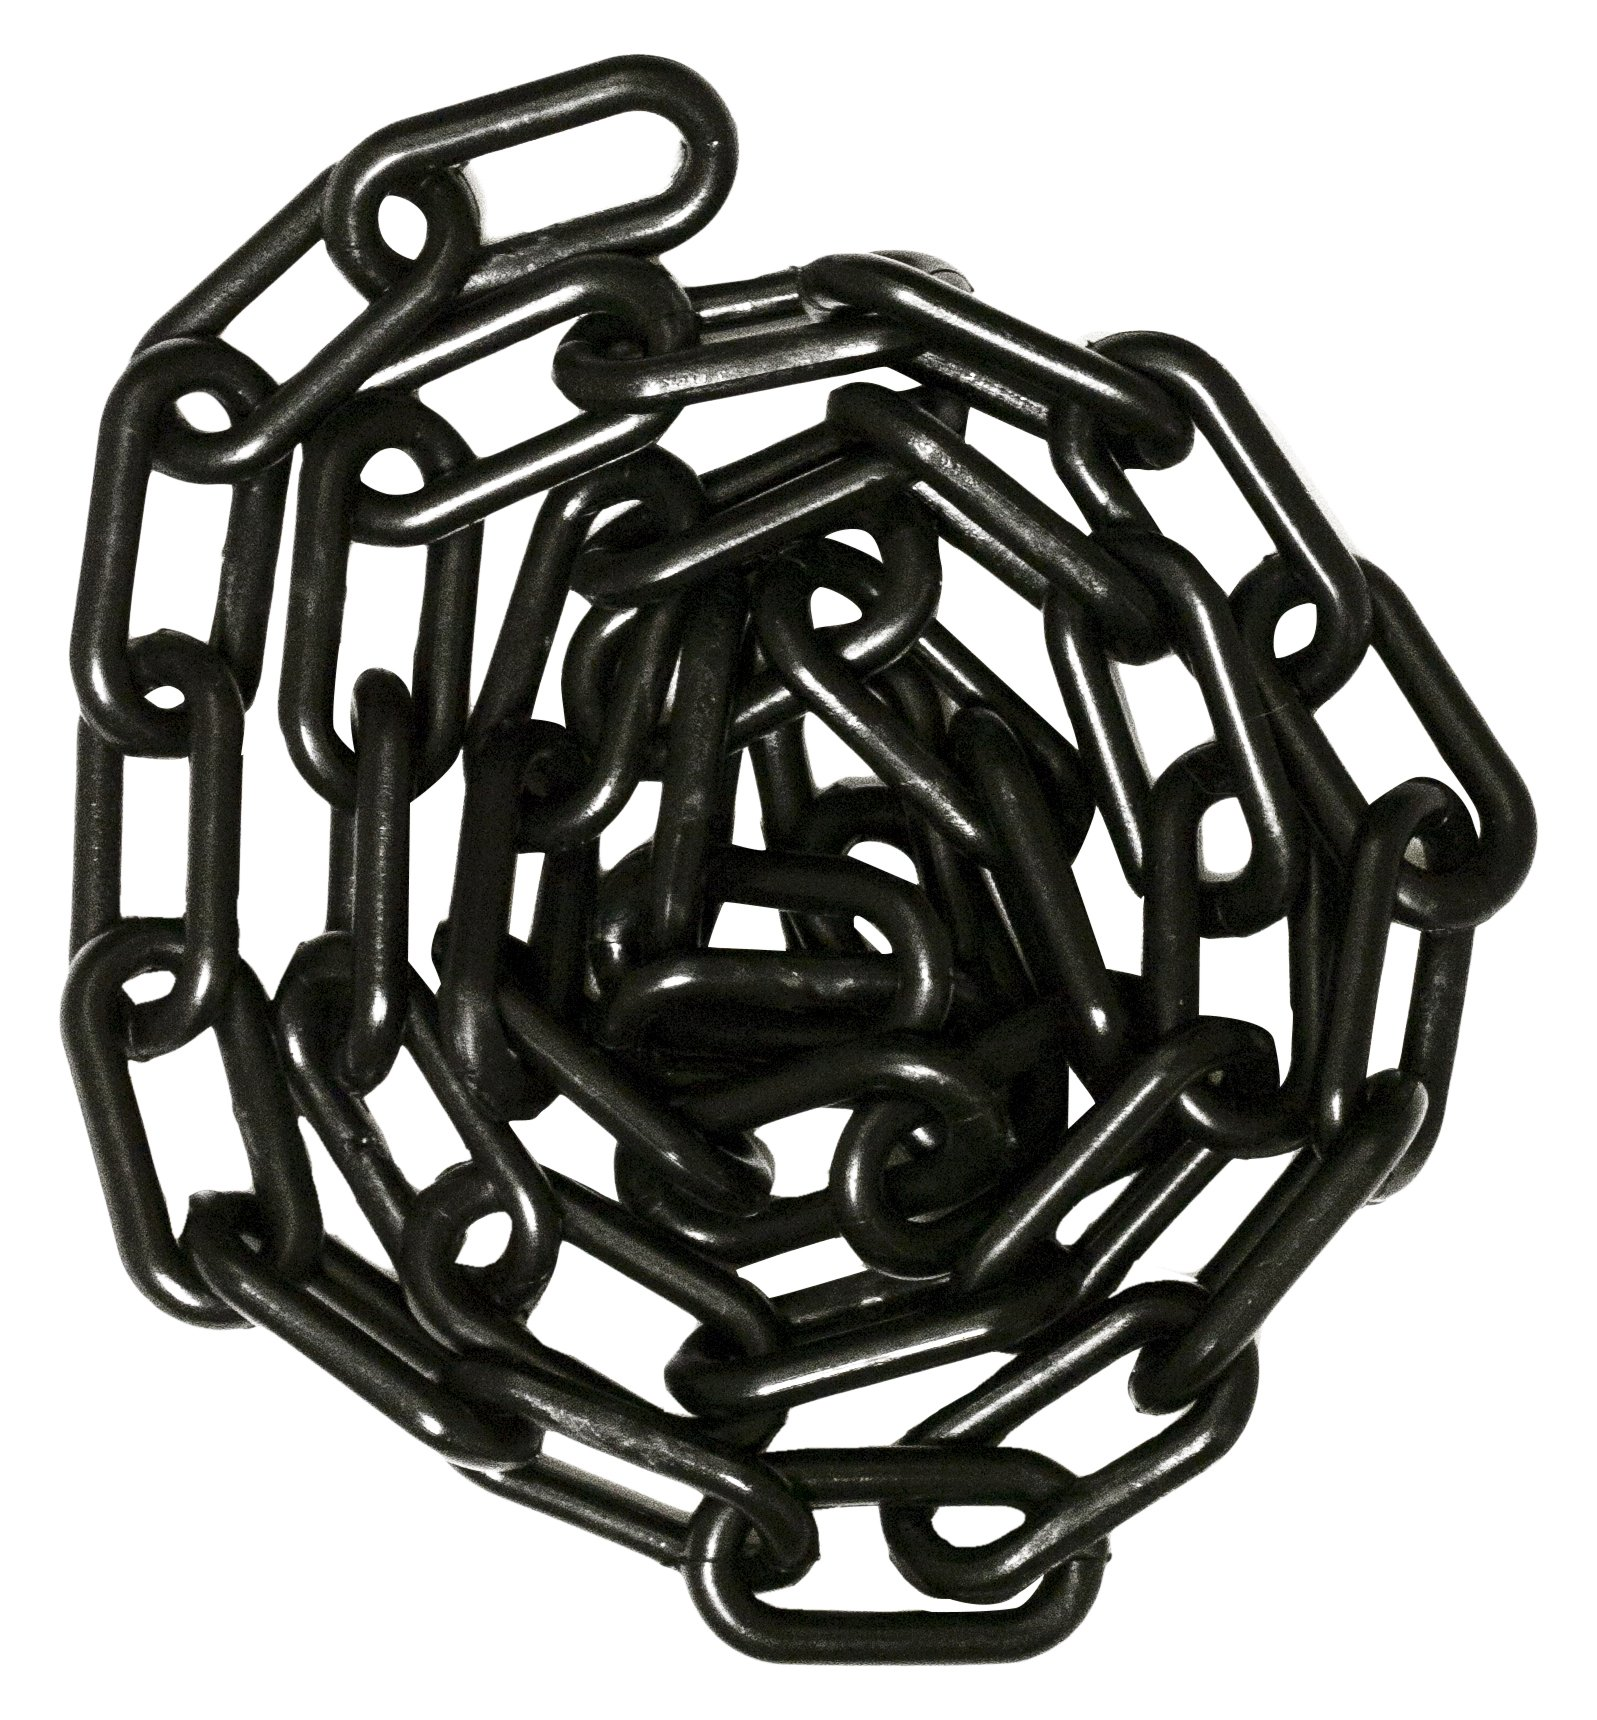 Mr. Chain Plastic Barrier Chain, Black, 1.5-Inch Link Diameter, 25-Foot Length (30003-25) by Mr. Chain